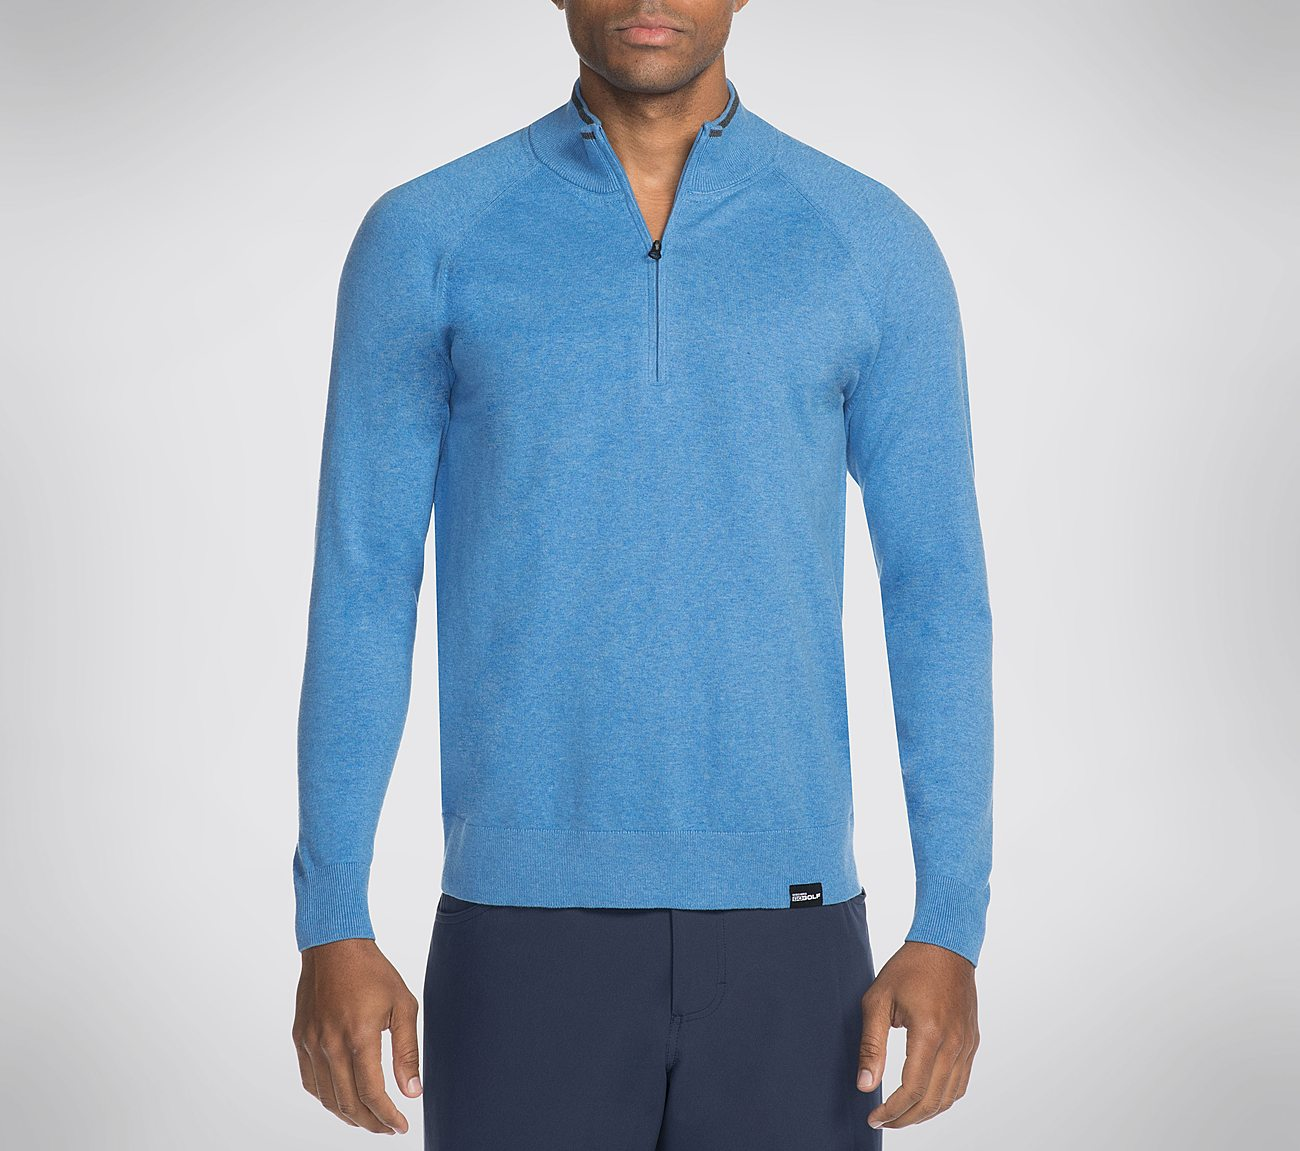 Skechers GO GOLF Fairway LS 1/4 Zip Mock Pullover Shirt